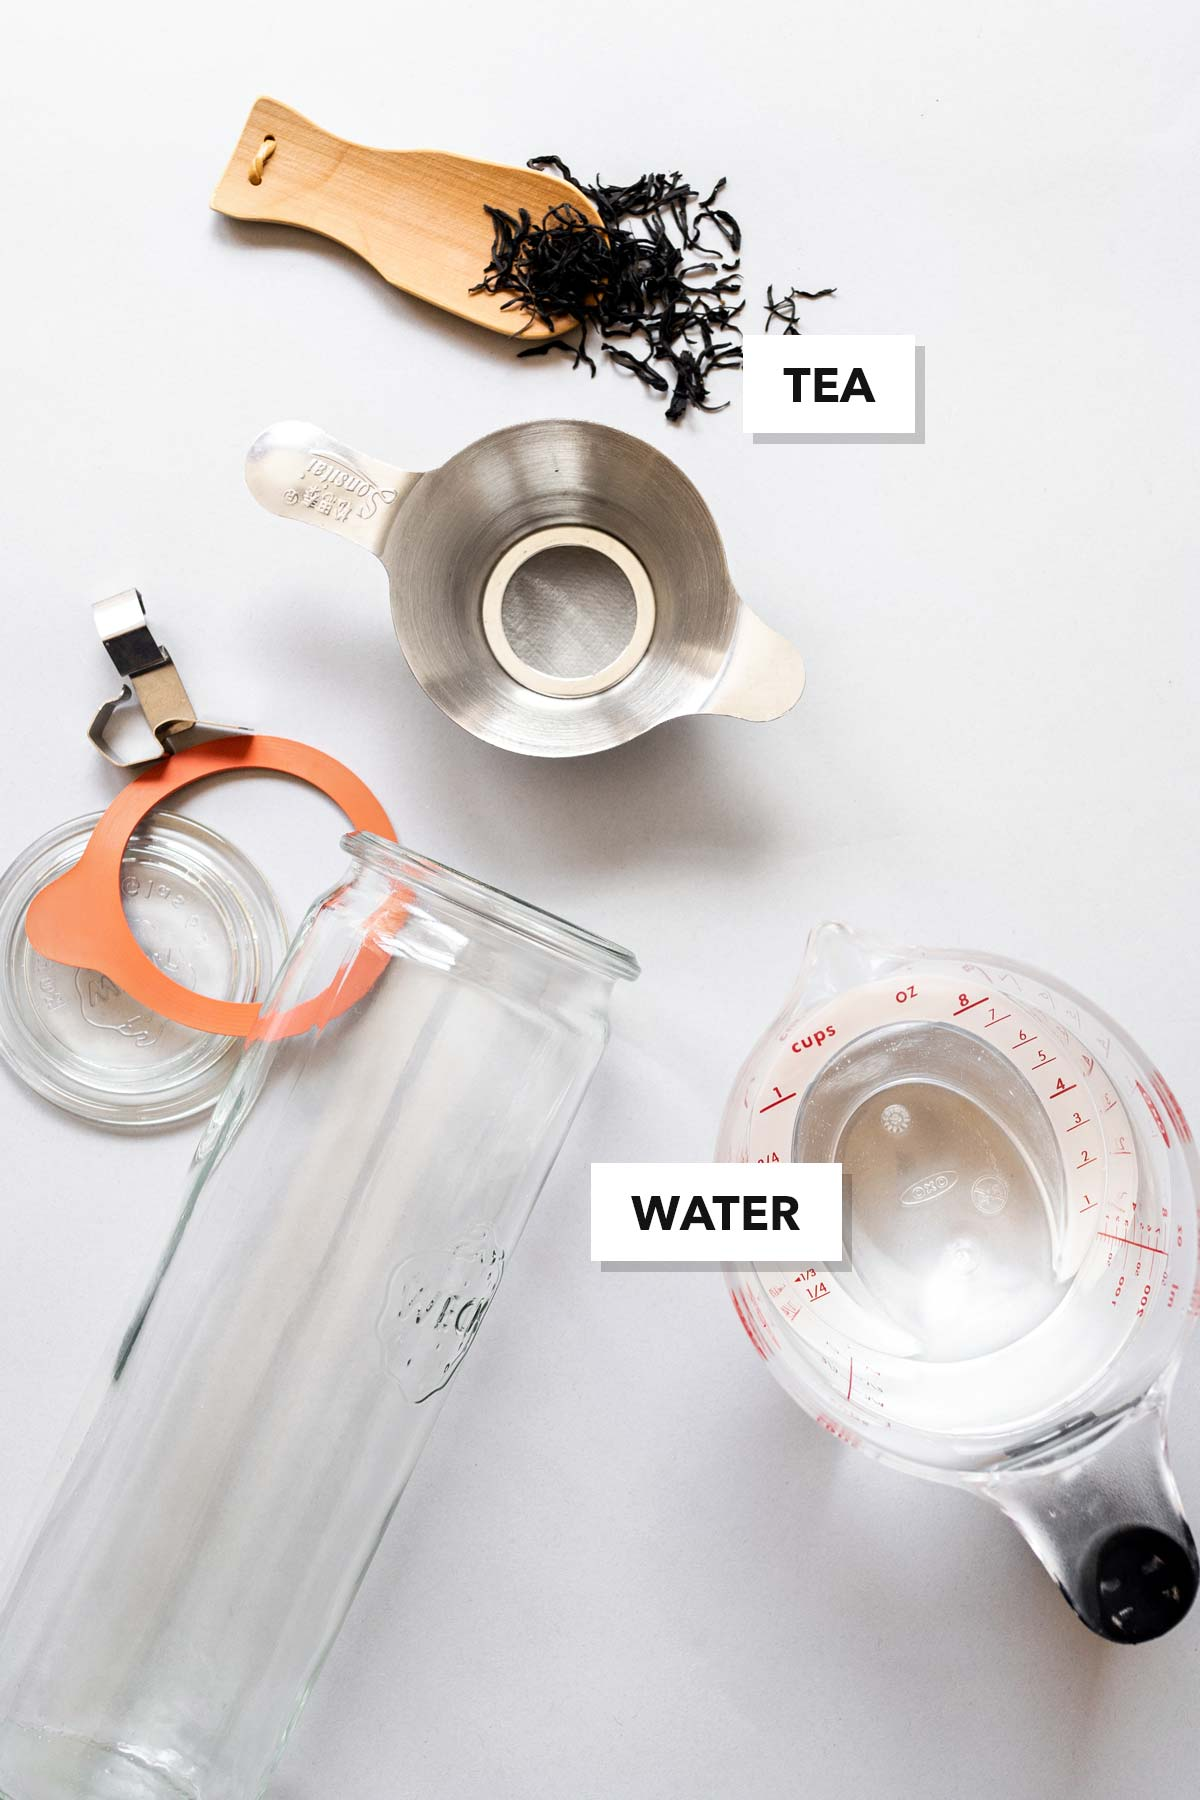 Cold brew iced tea ingredients.